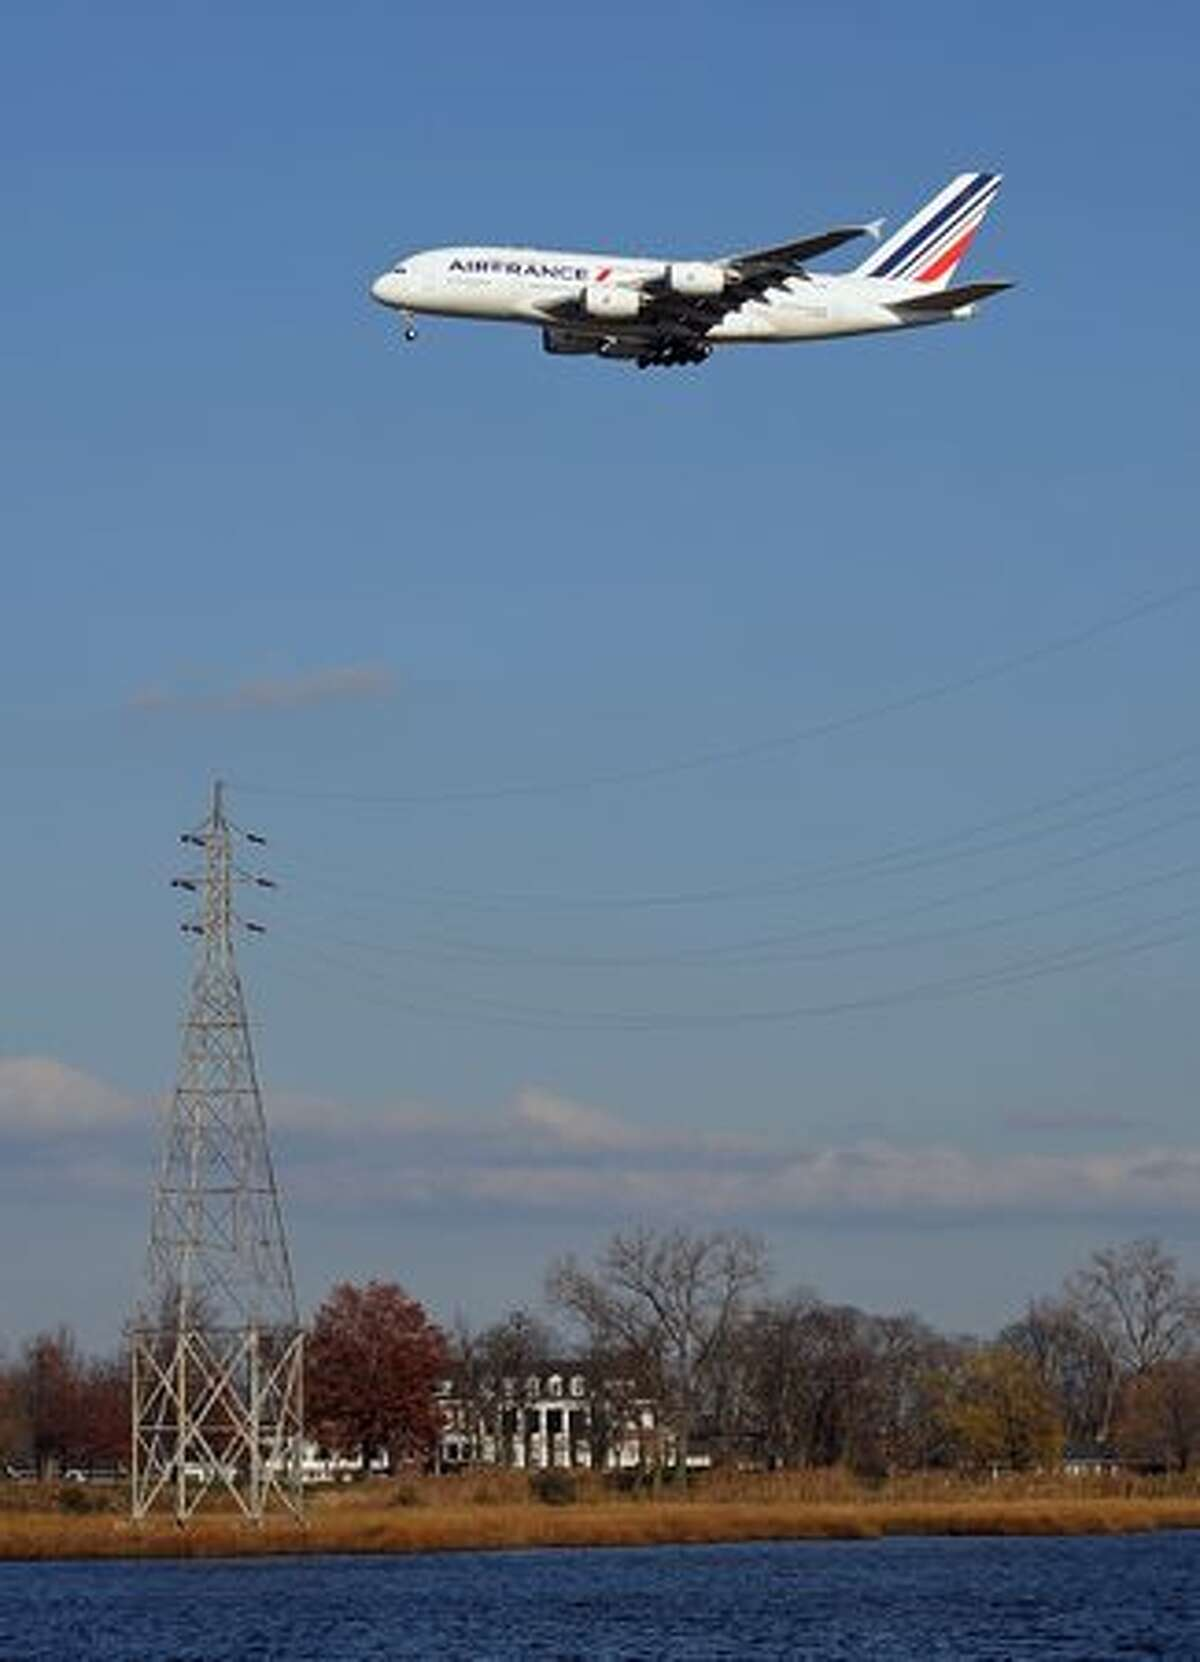 An Air France Airbus A380 plane lands at John F. Kennedy International Airport Nov. 20, 2009 in New York for the first A380 Superjumbo flight on the Paris-Charles de Gaulle to New York-JFK route. Daily flights are scheduled to start on Nov. 23, 2009.